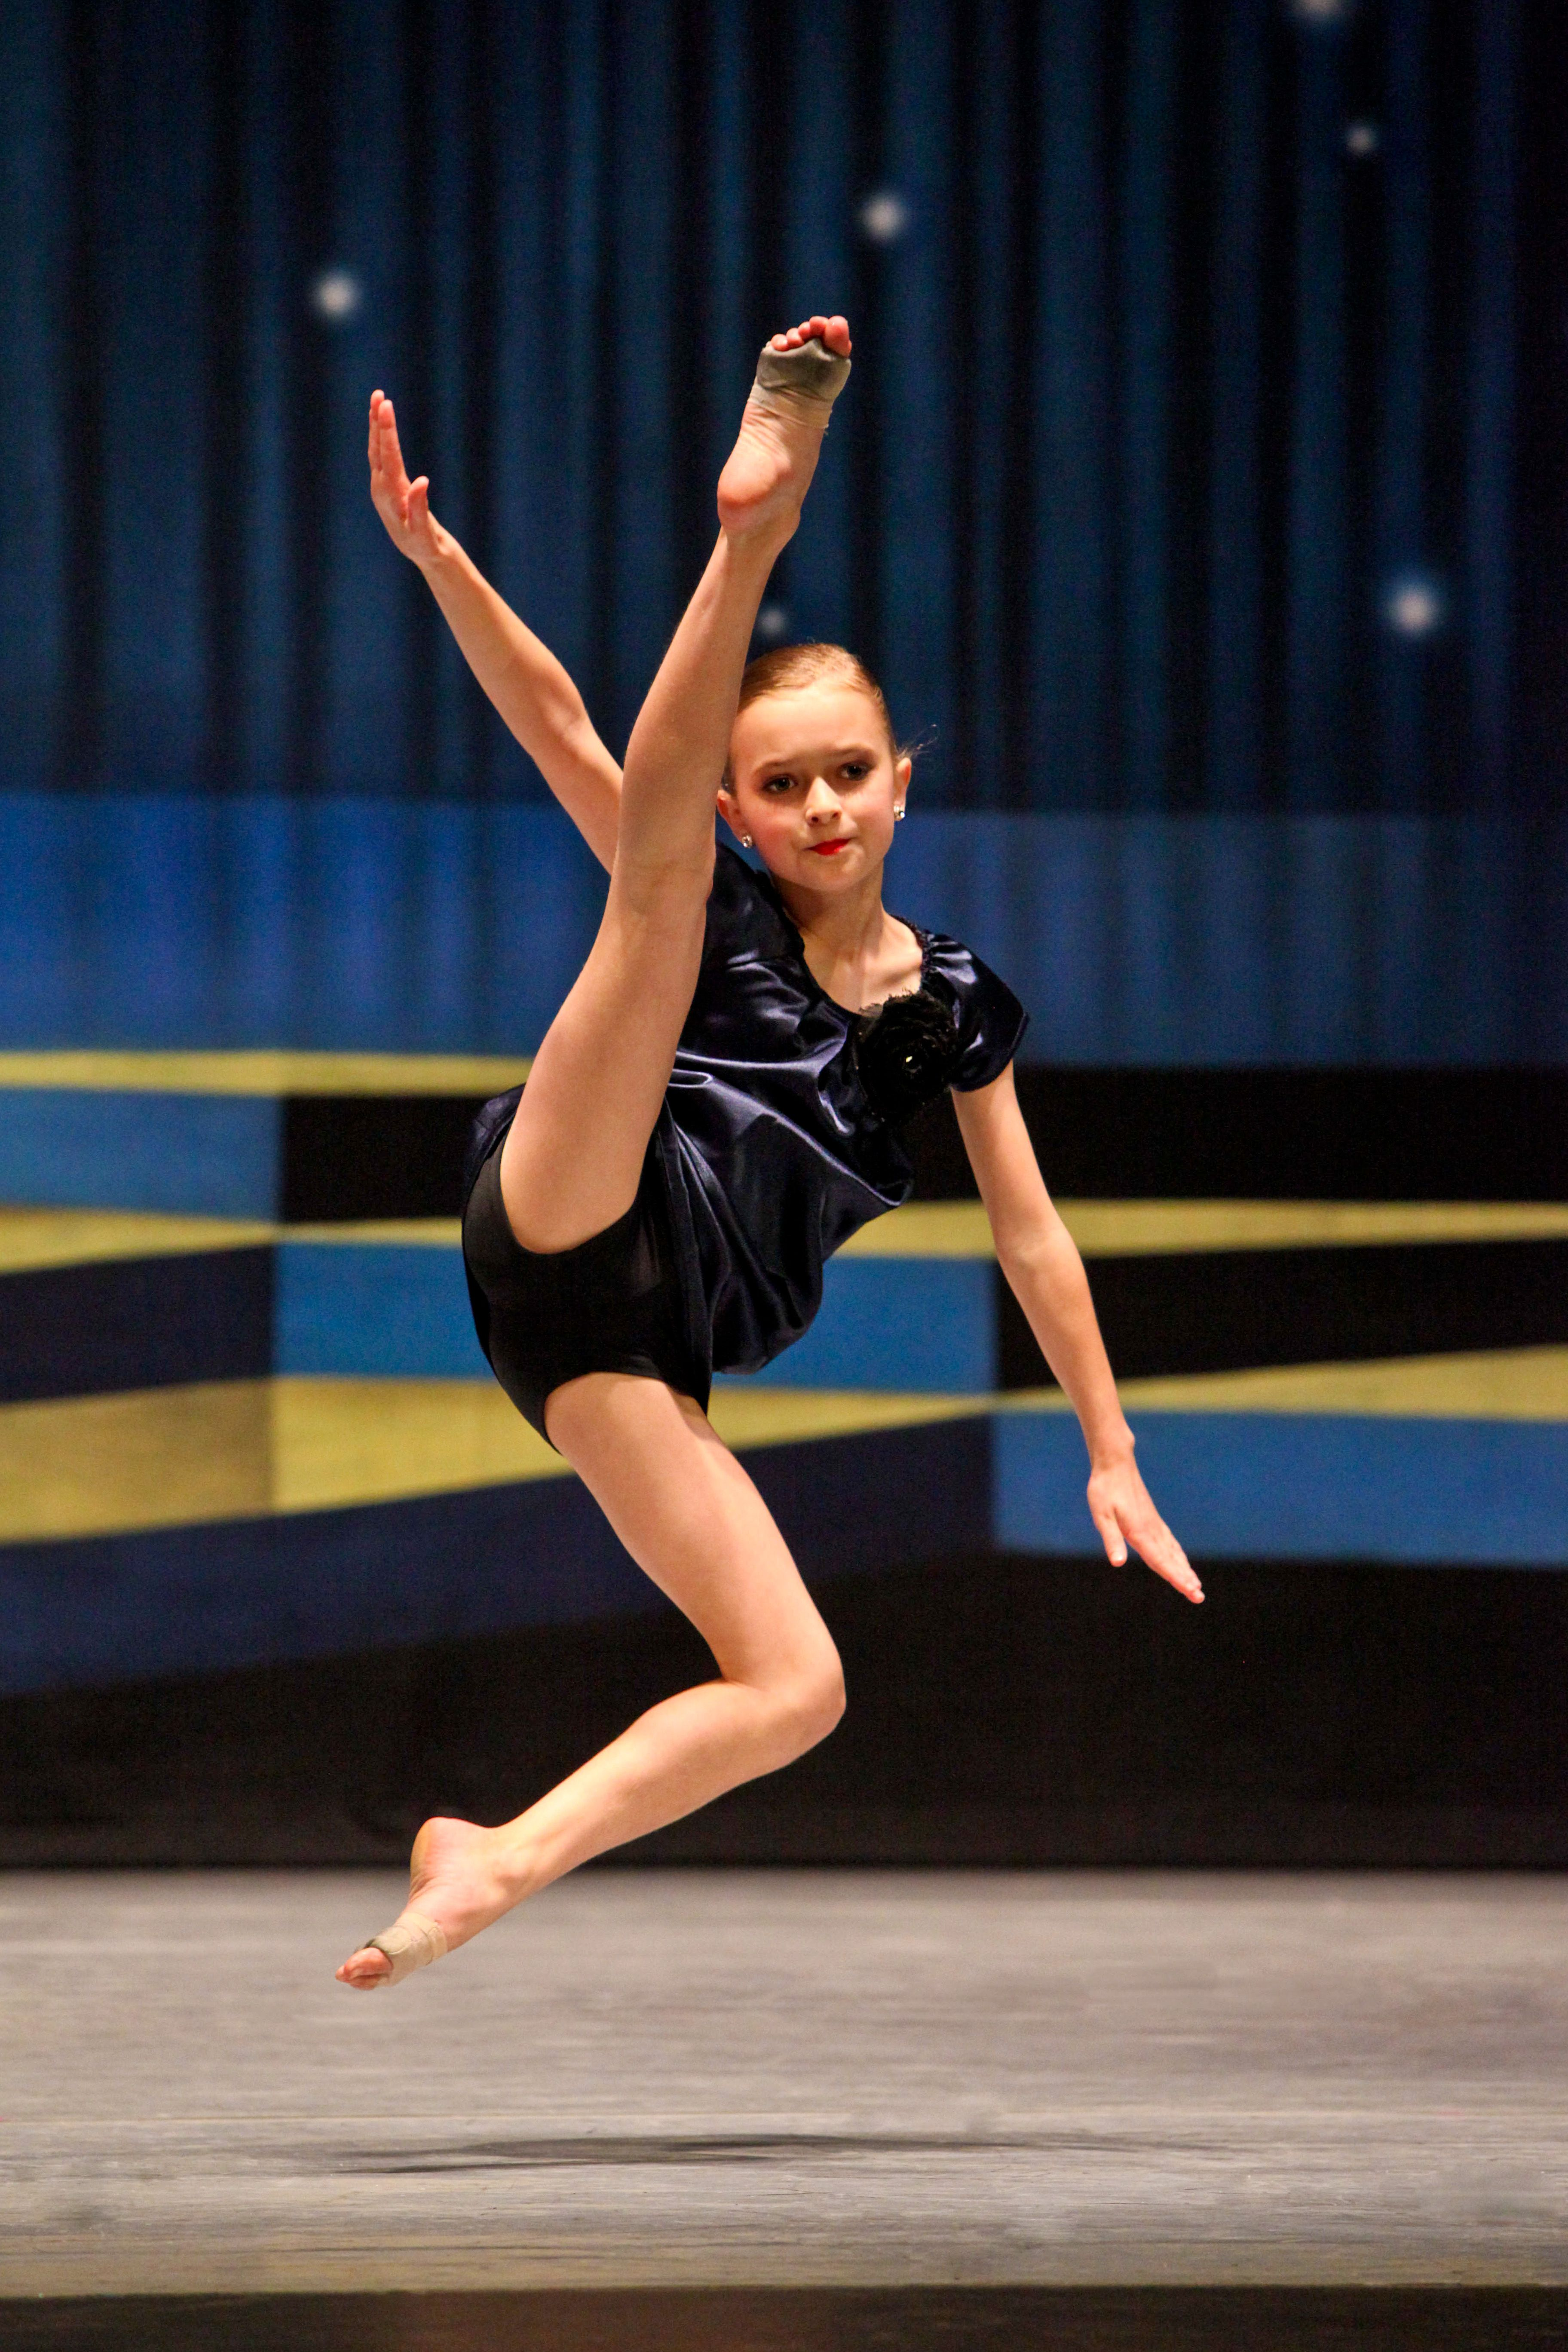 Dance Photography Dance Competition Photography Dance Dance Motivation Dance Photography Dance Competition